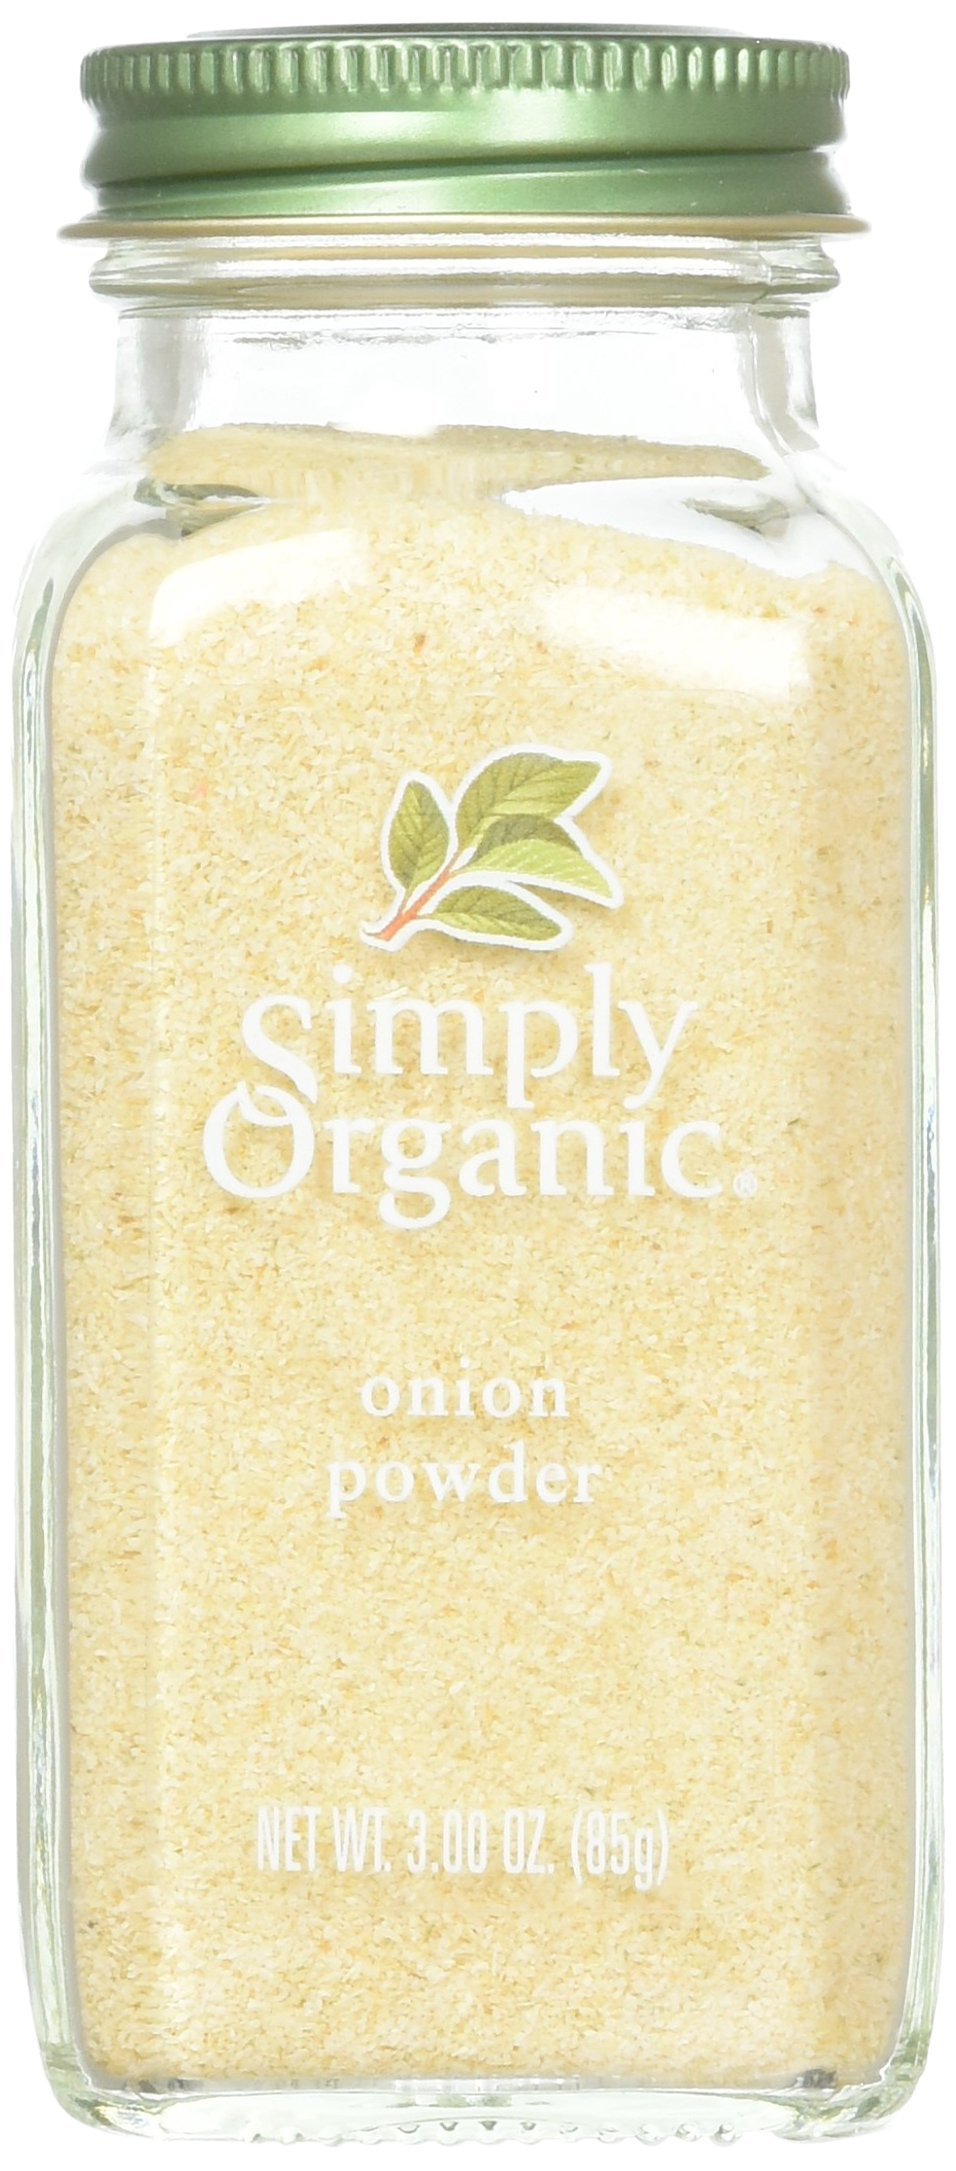 Simply Organic Onion, White Powder ORGANIC 3.00 oz. Bottle (a) - 1 Pack